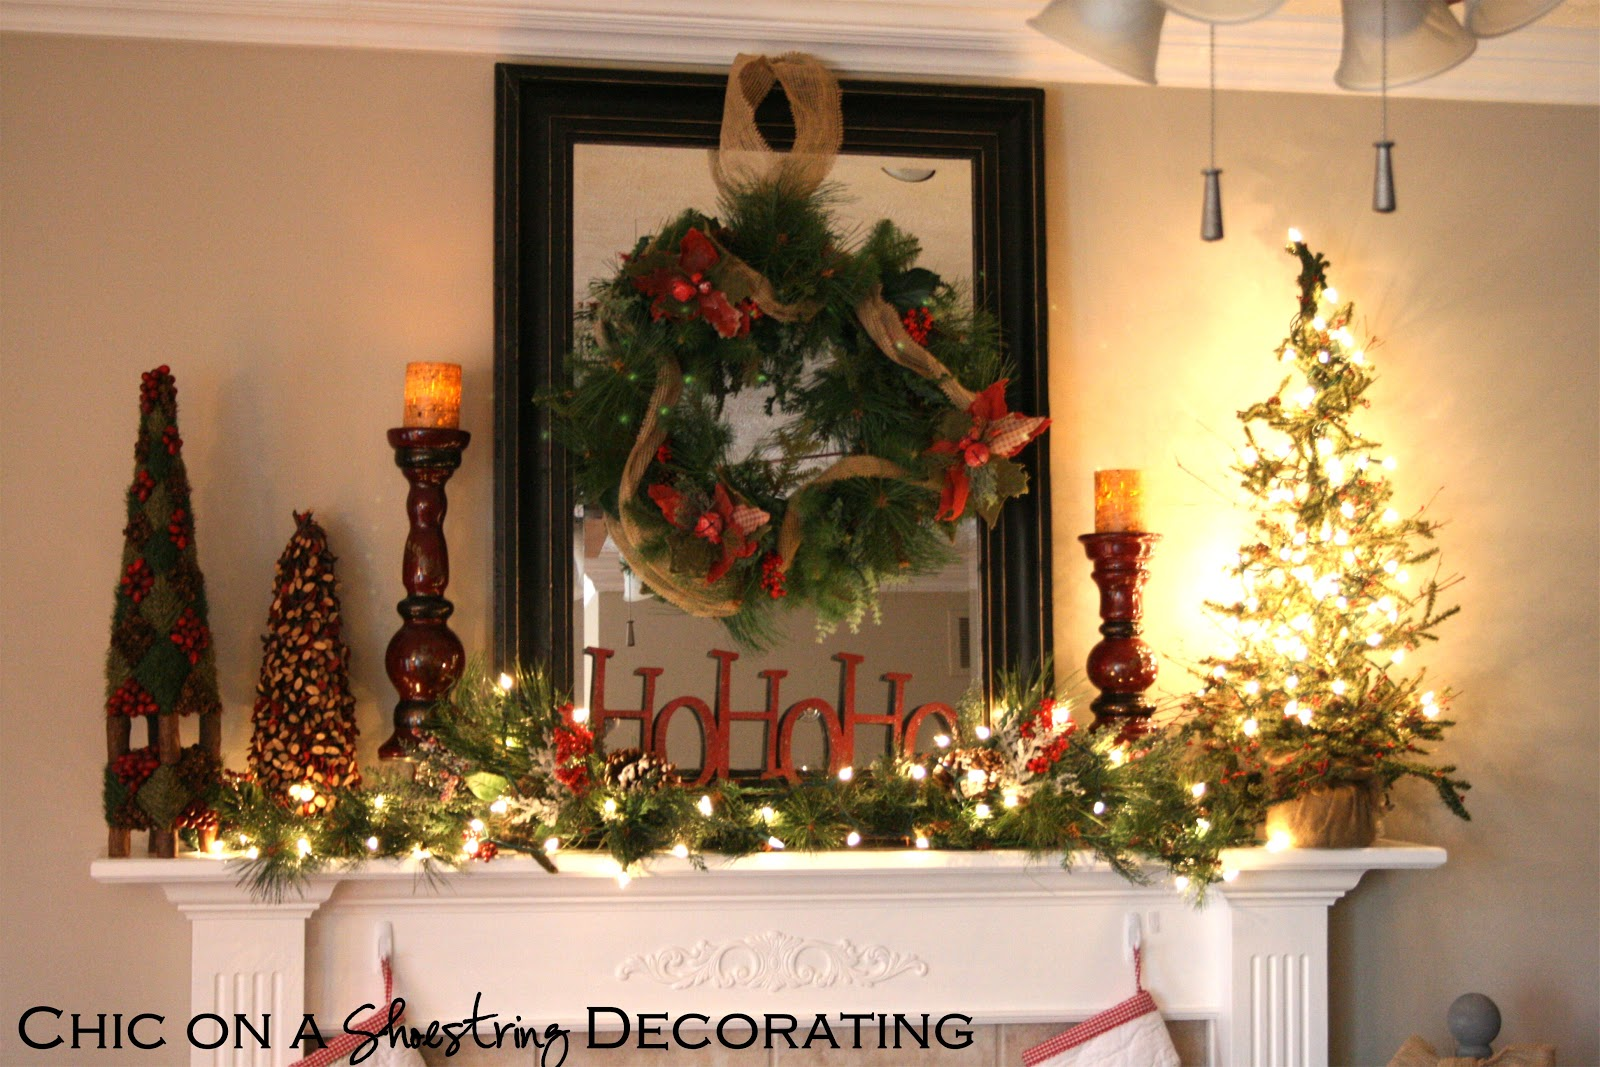 Chic on a shoestring decorating rustic christmas mantel for Design a christmas decoration